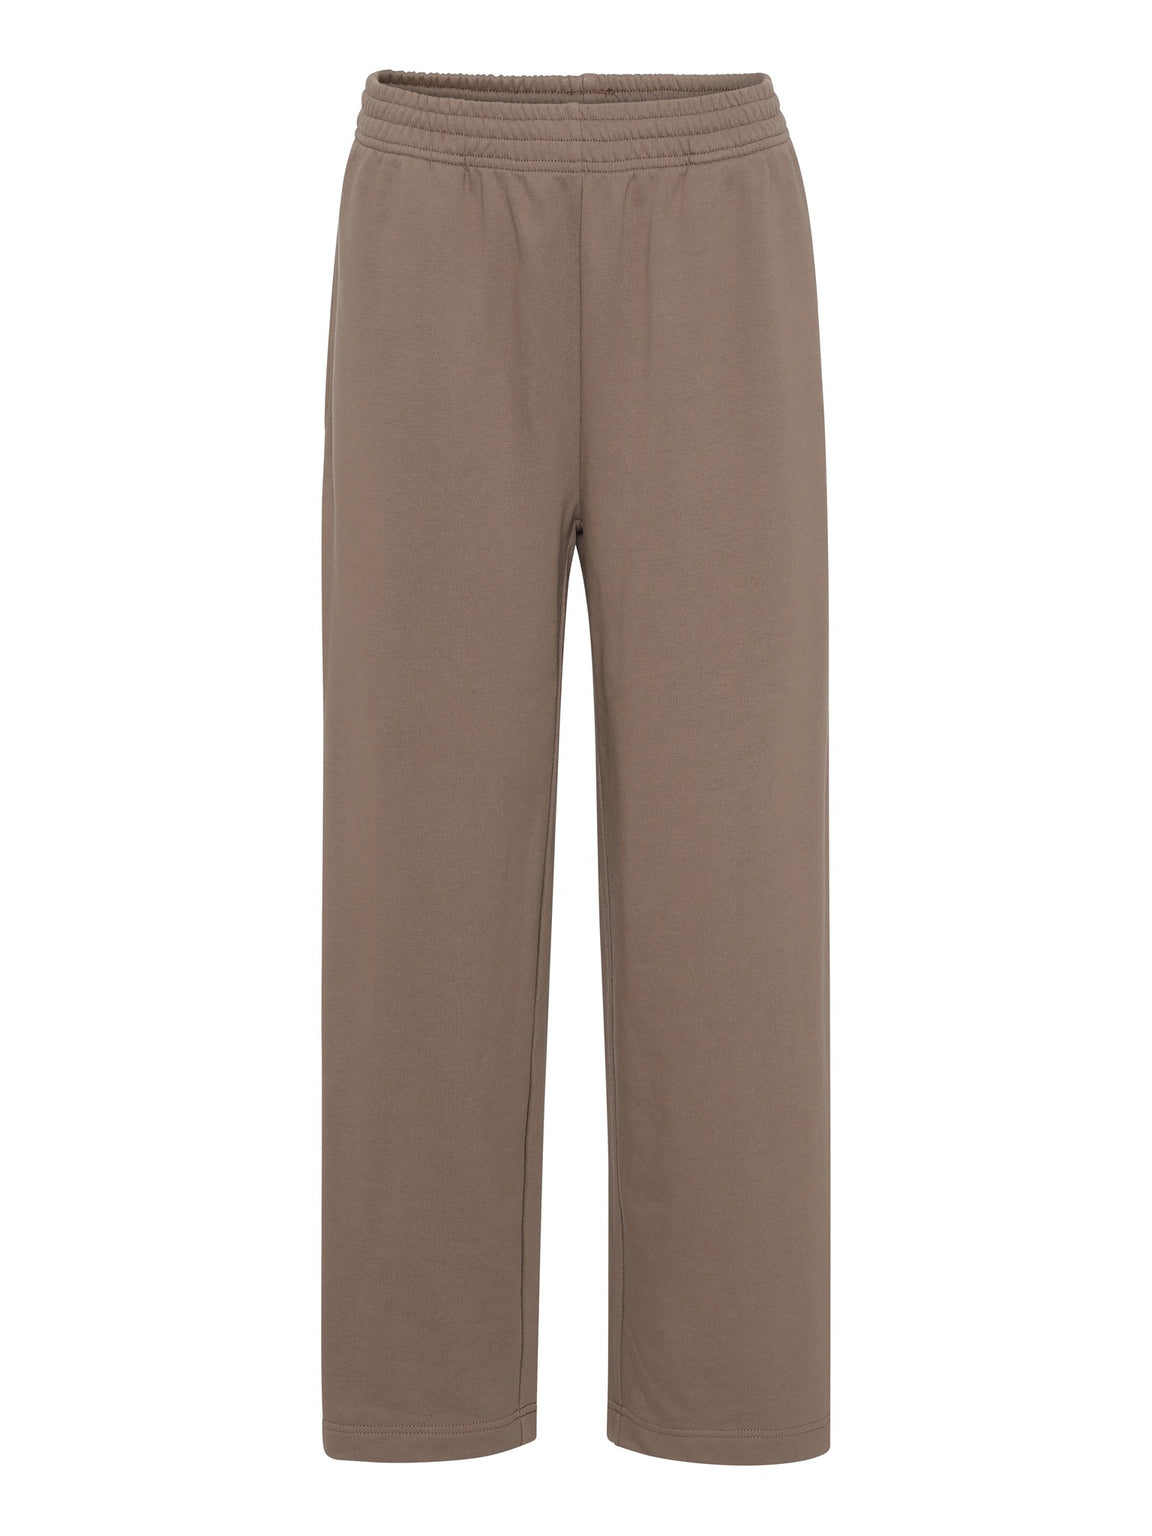 KYLIE PANTS - FUDGE BROWN